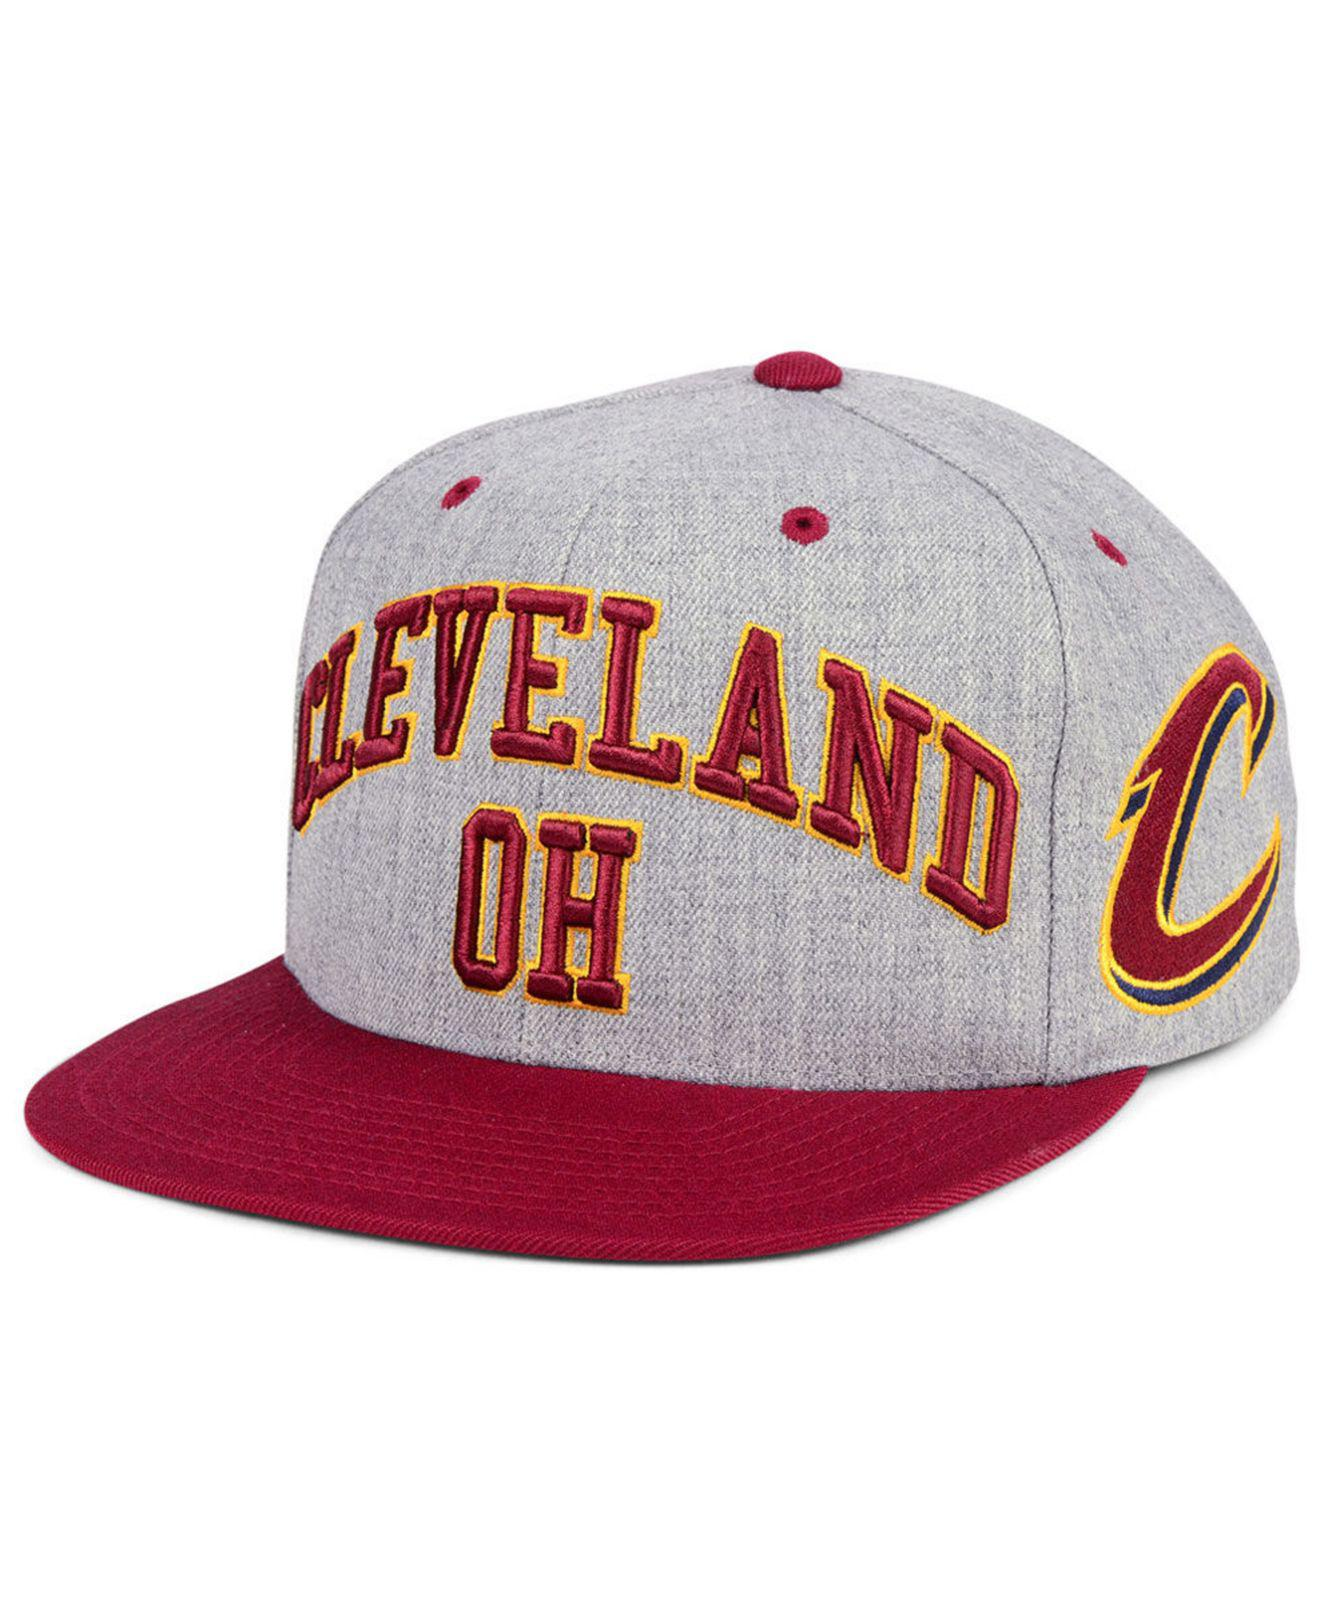 quality design b7cf2 edbc5 ... netherlands mitchell ness. mens cleveland cavaliers side panel cropped  snapback cap 79c86 eb35e